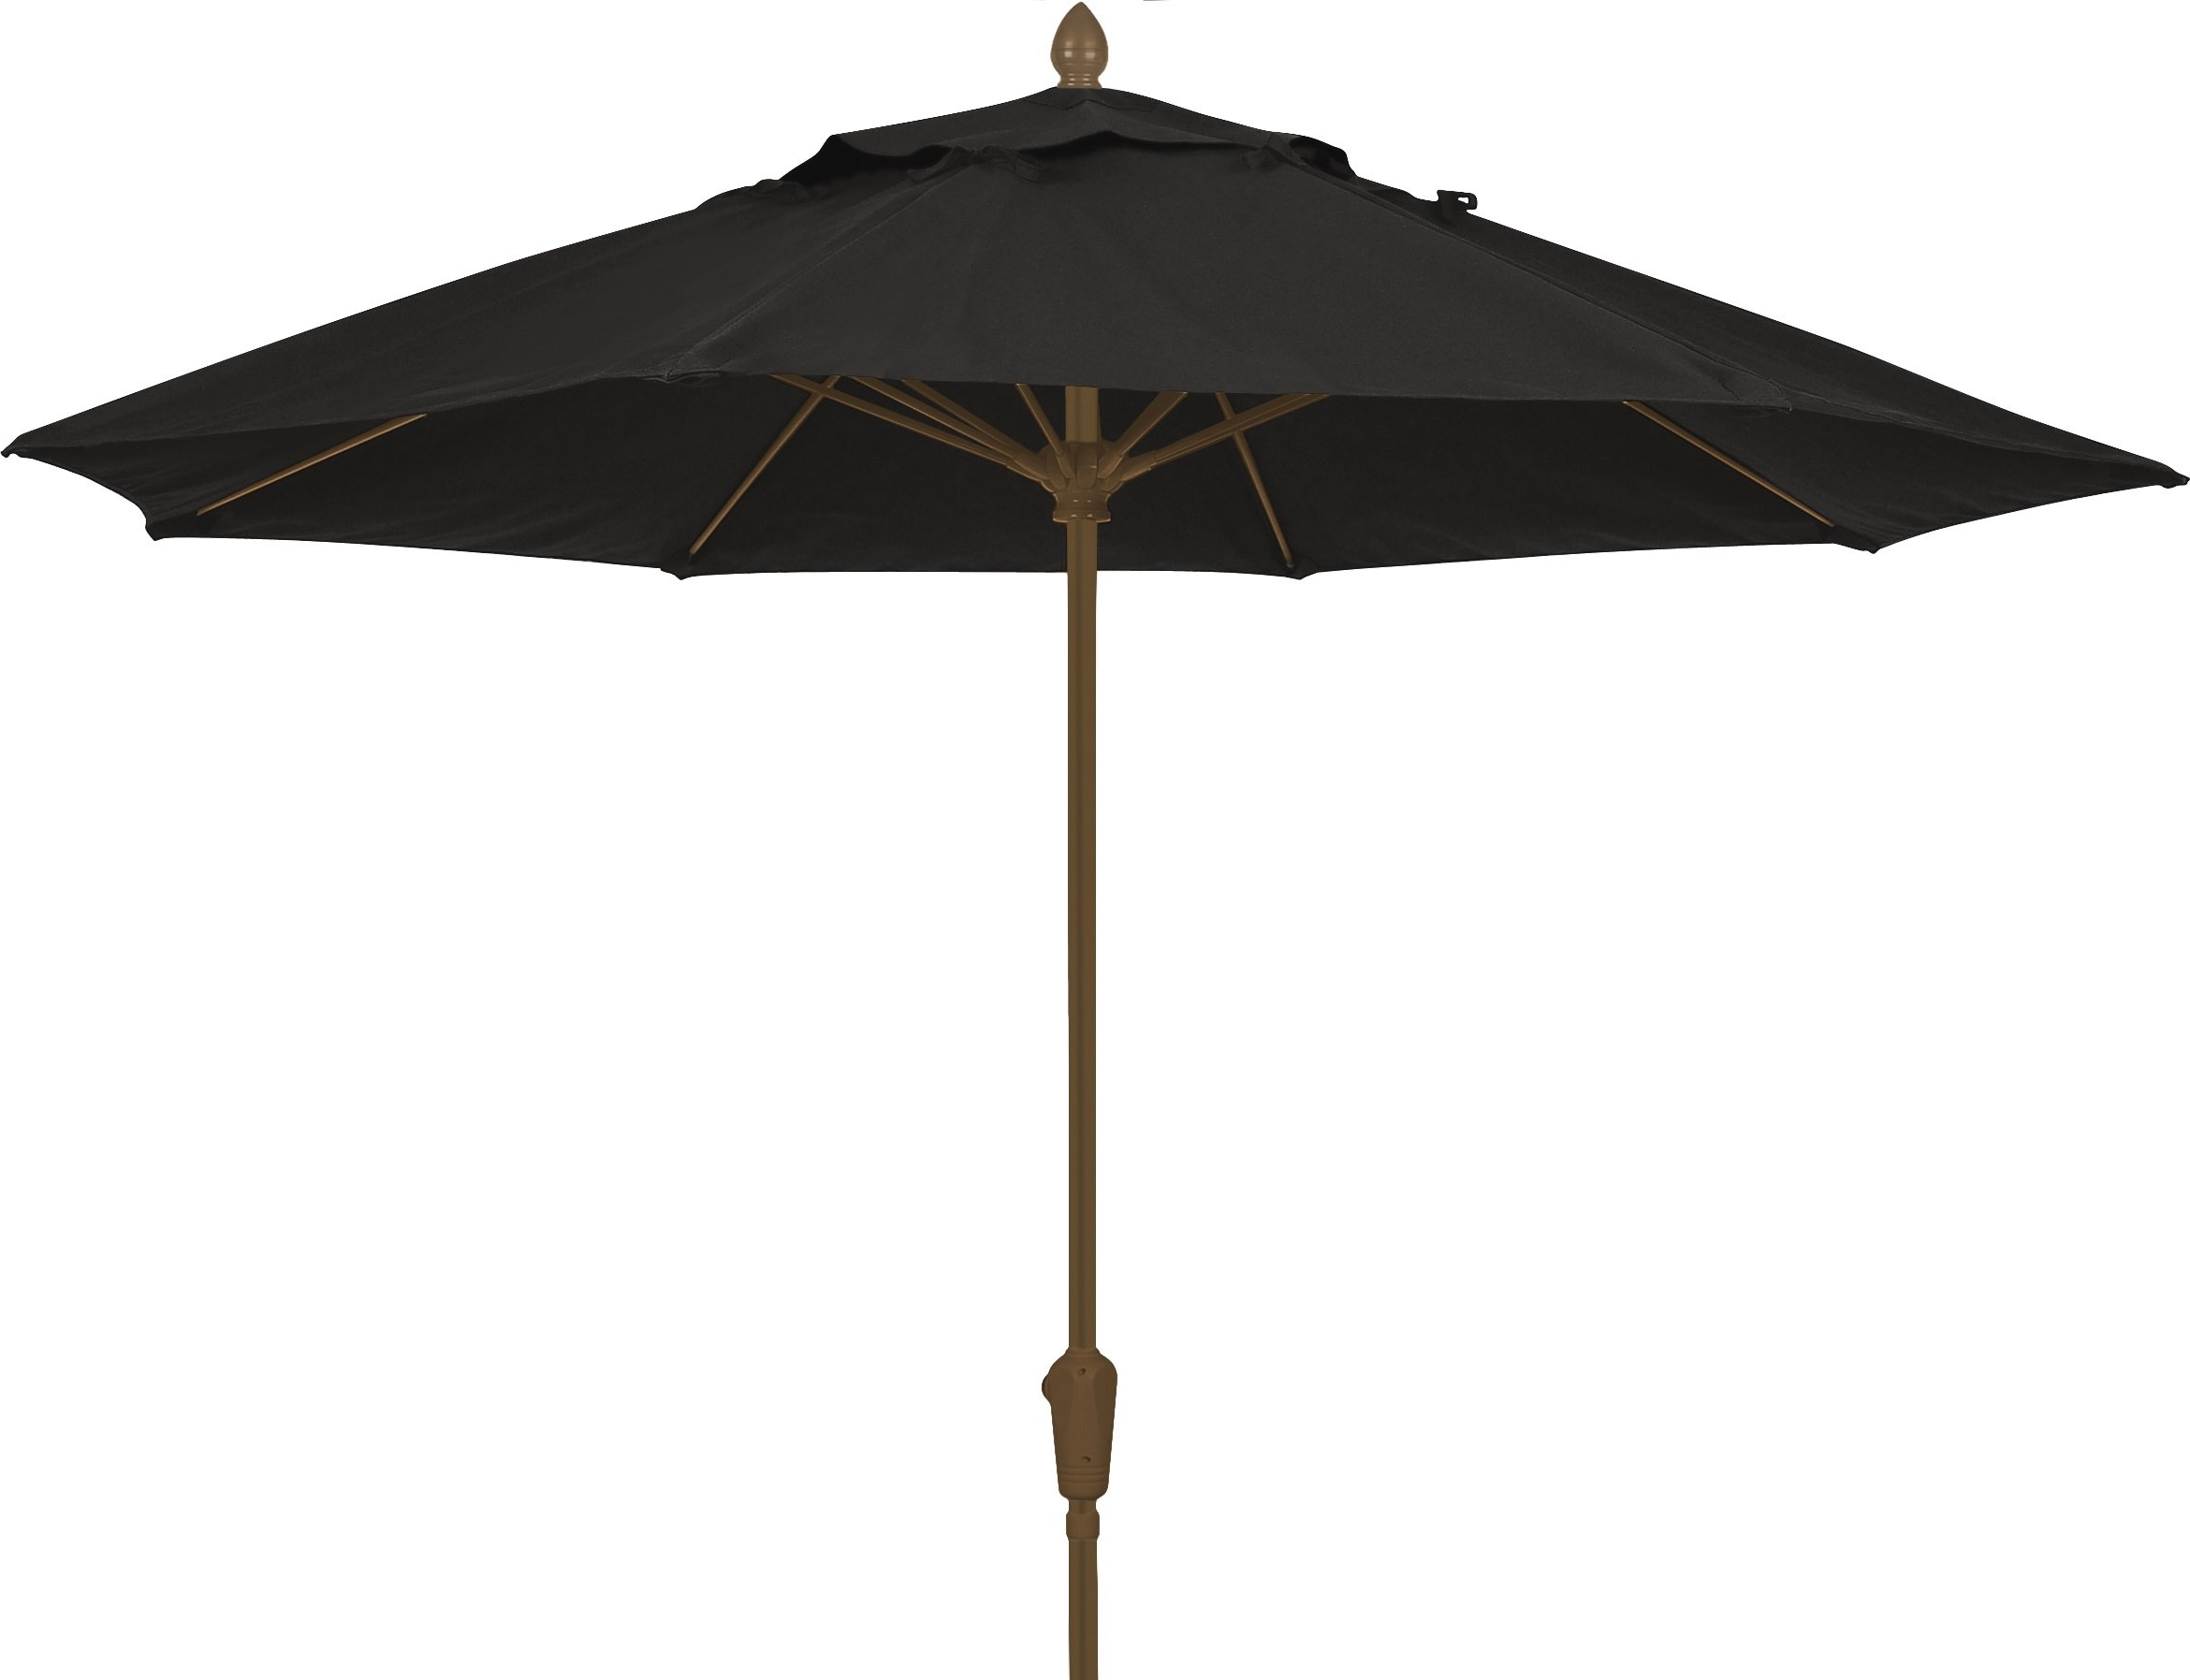 Widely Used Julian Market Sunbrella Umbrellas For Prestige 9' Market Sunbrella Umbrella (View 19 of 20)